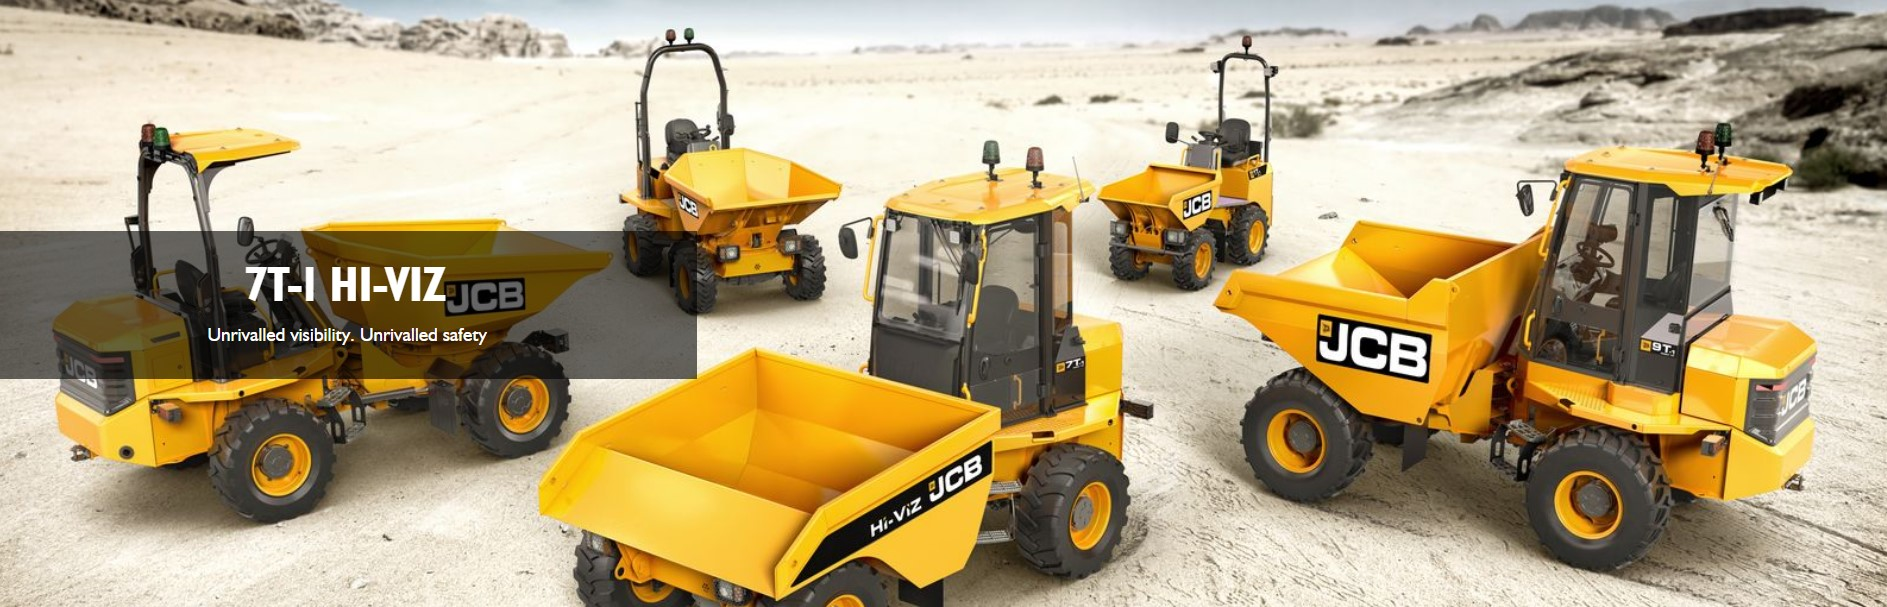 Image of a Site Dumpers